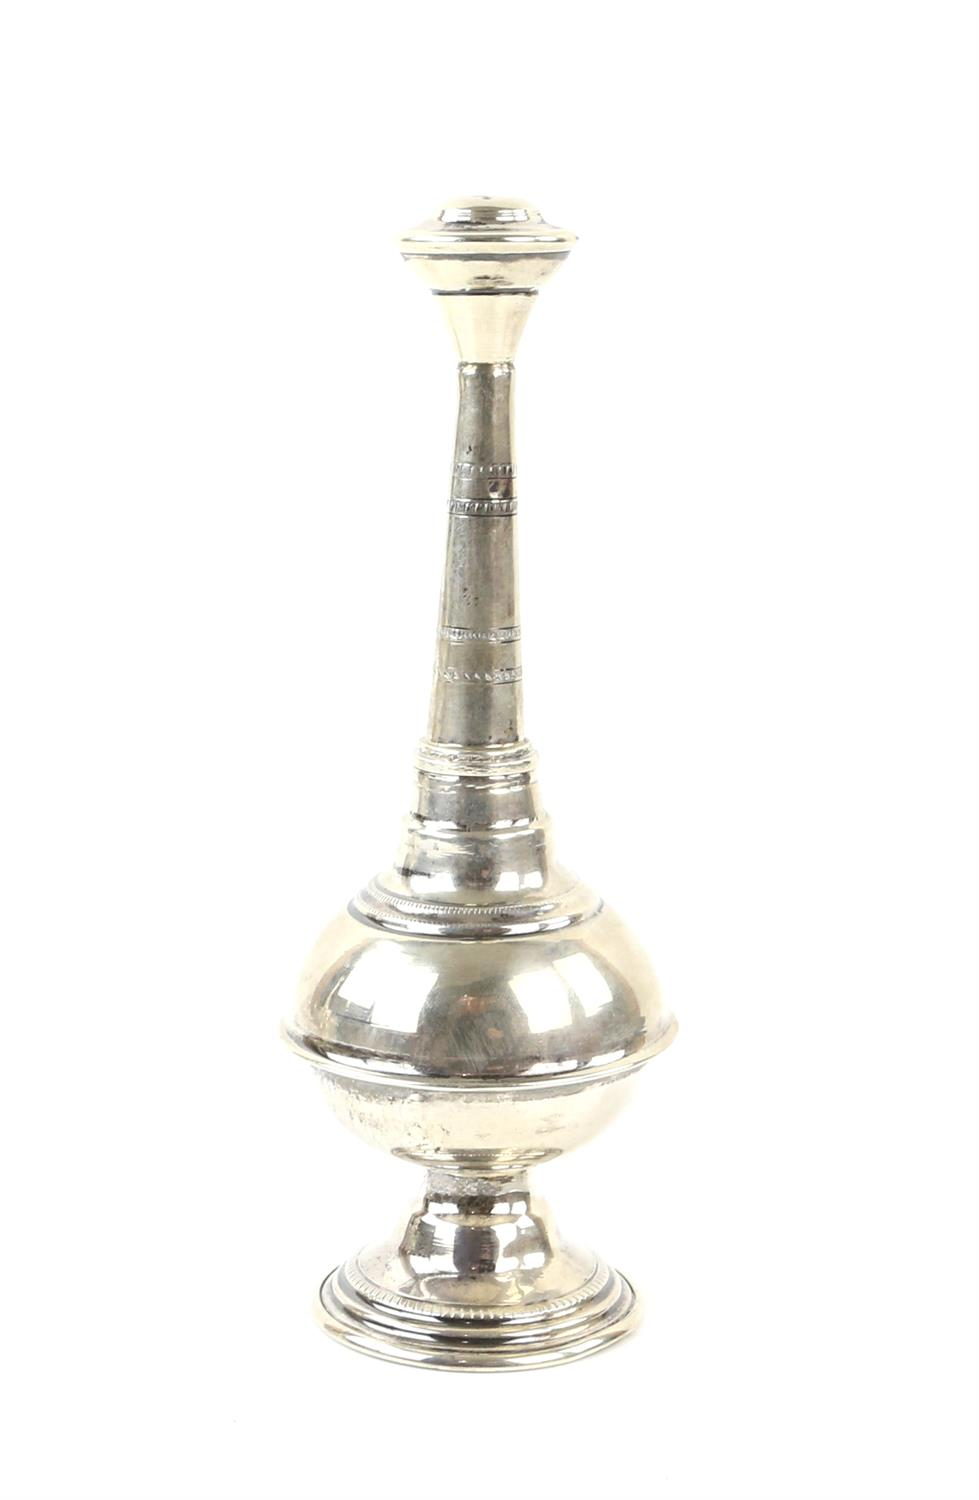 Two 20th century Egyptian silver rosewater sprinklers, the long neck with bands of decoration, - Image 4 of 6